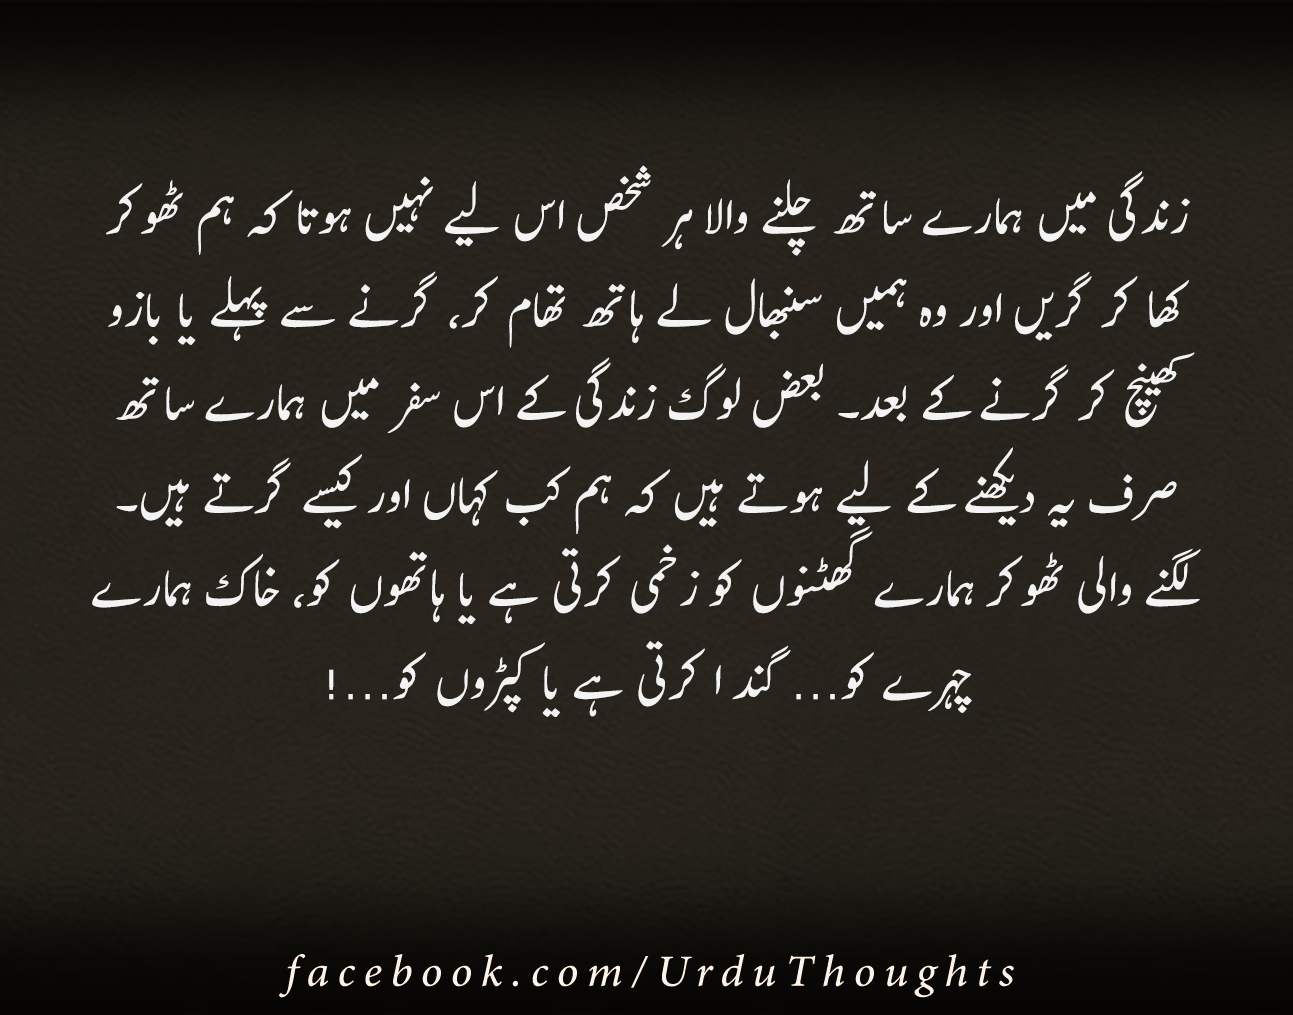 Bano Qudsia Dialogue 12 Images About Beautiful Quotes Thoughts In Urdu Urdu Thoughts